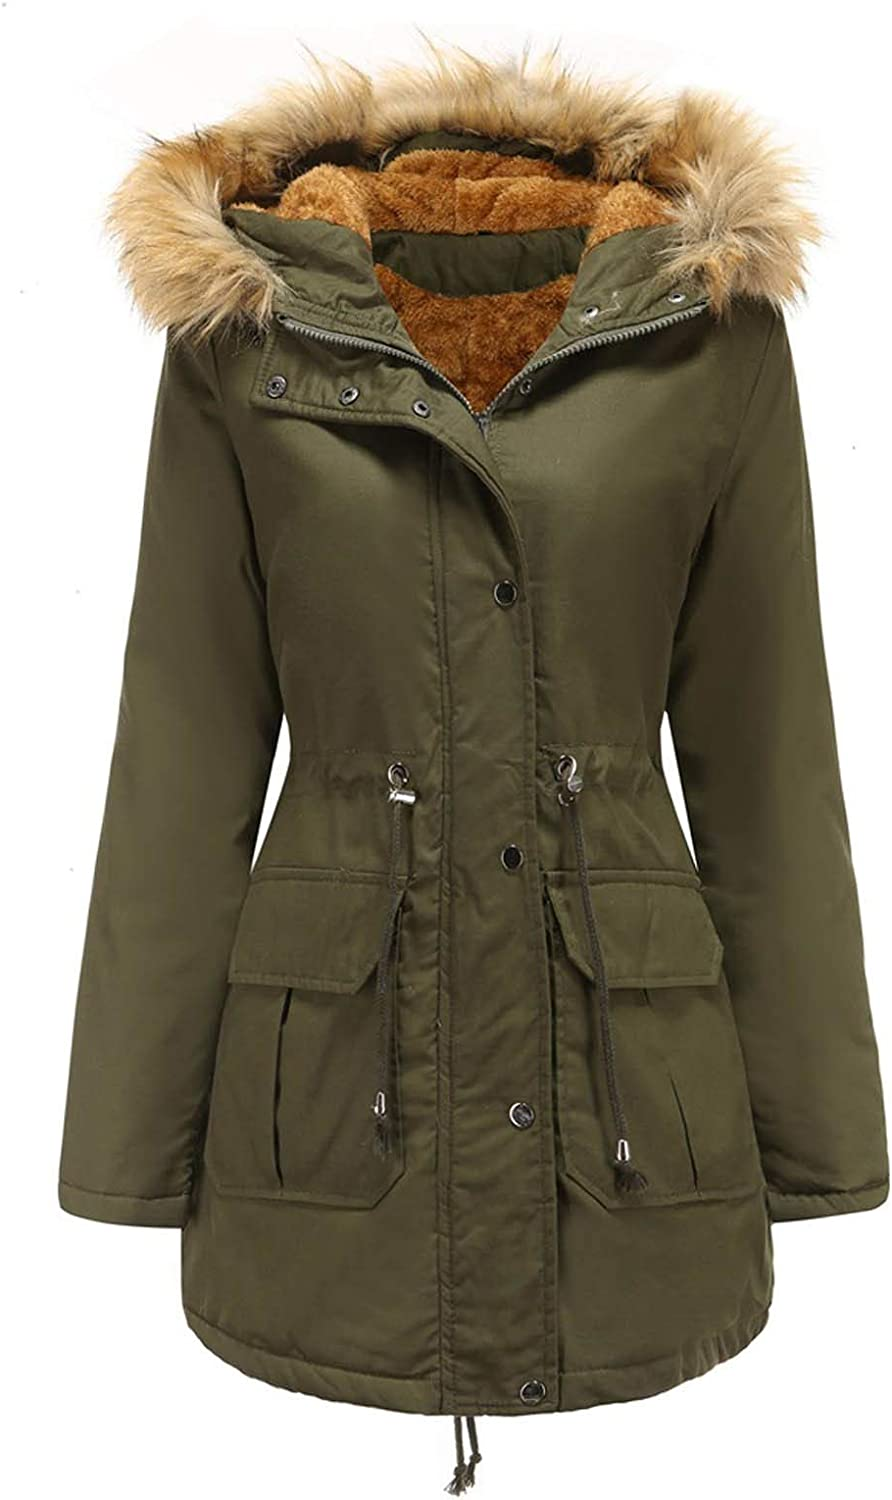 VEKDONE Women Winter Coat Hooded Warm Puffer Quilted Thicken Parka Jacket with Fur Hood Fleece Lined Long Cotton Pea Coat